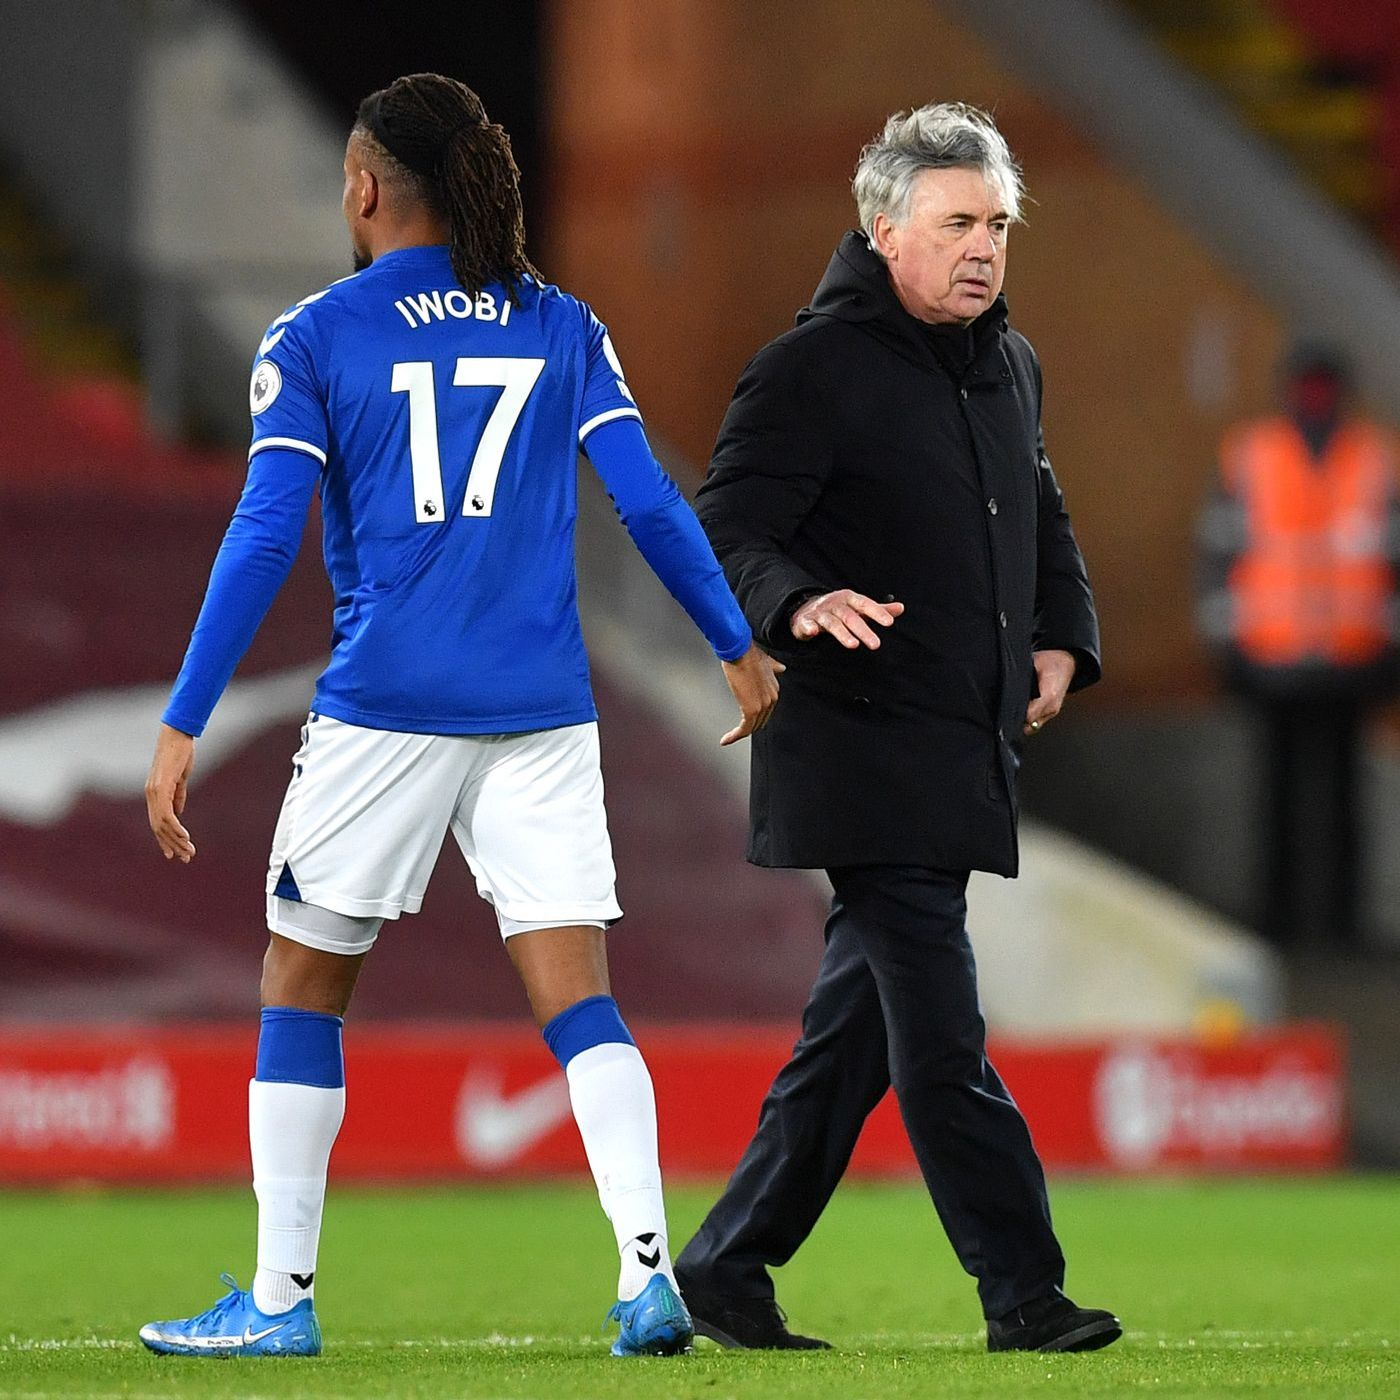 Royal Blue: Alex Iwobi conundrum, Abdoulaye Doucoure and James Rodriguez blow & Davide Ancelotti's role in Blues' resurgence